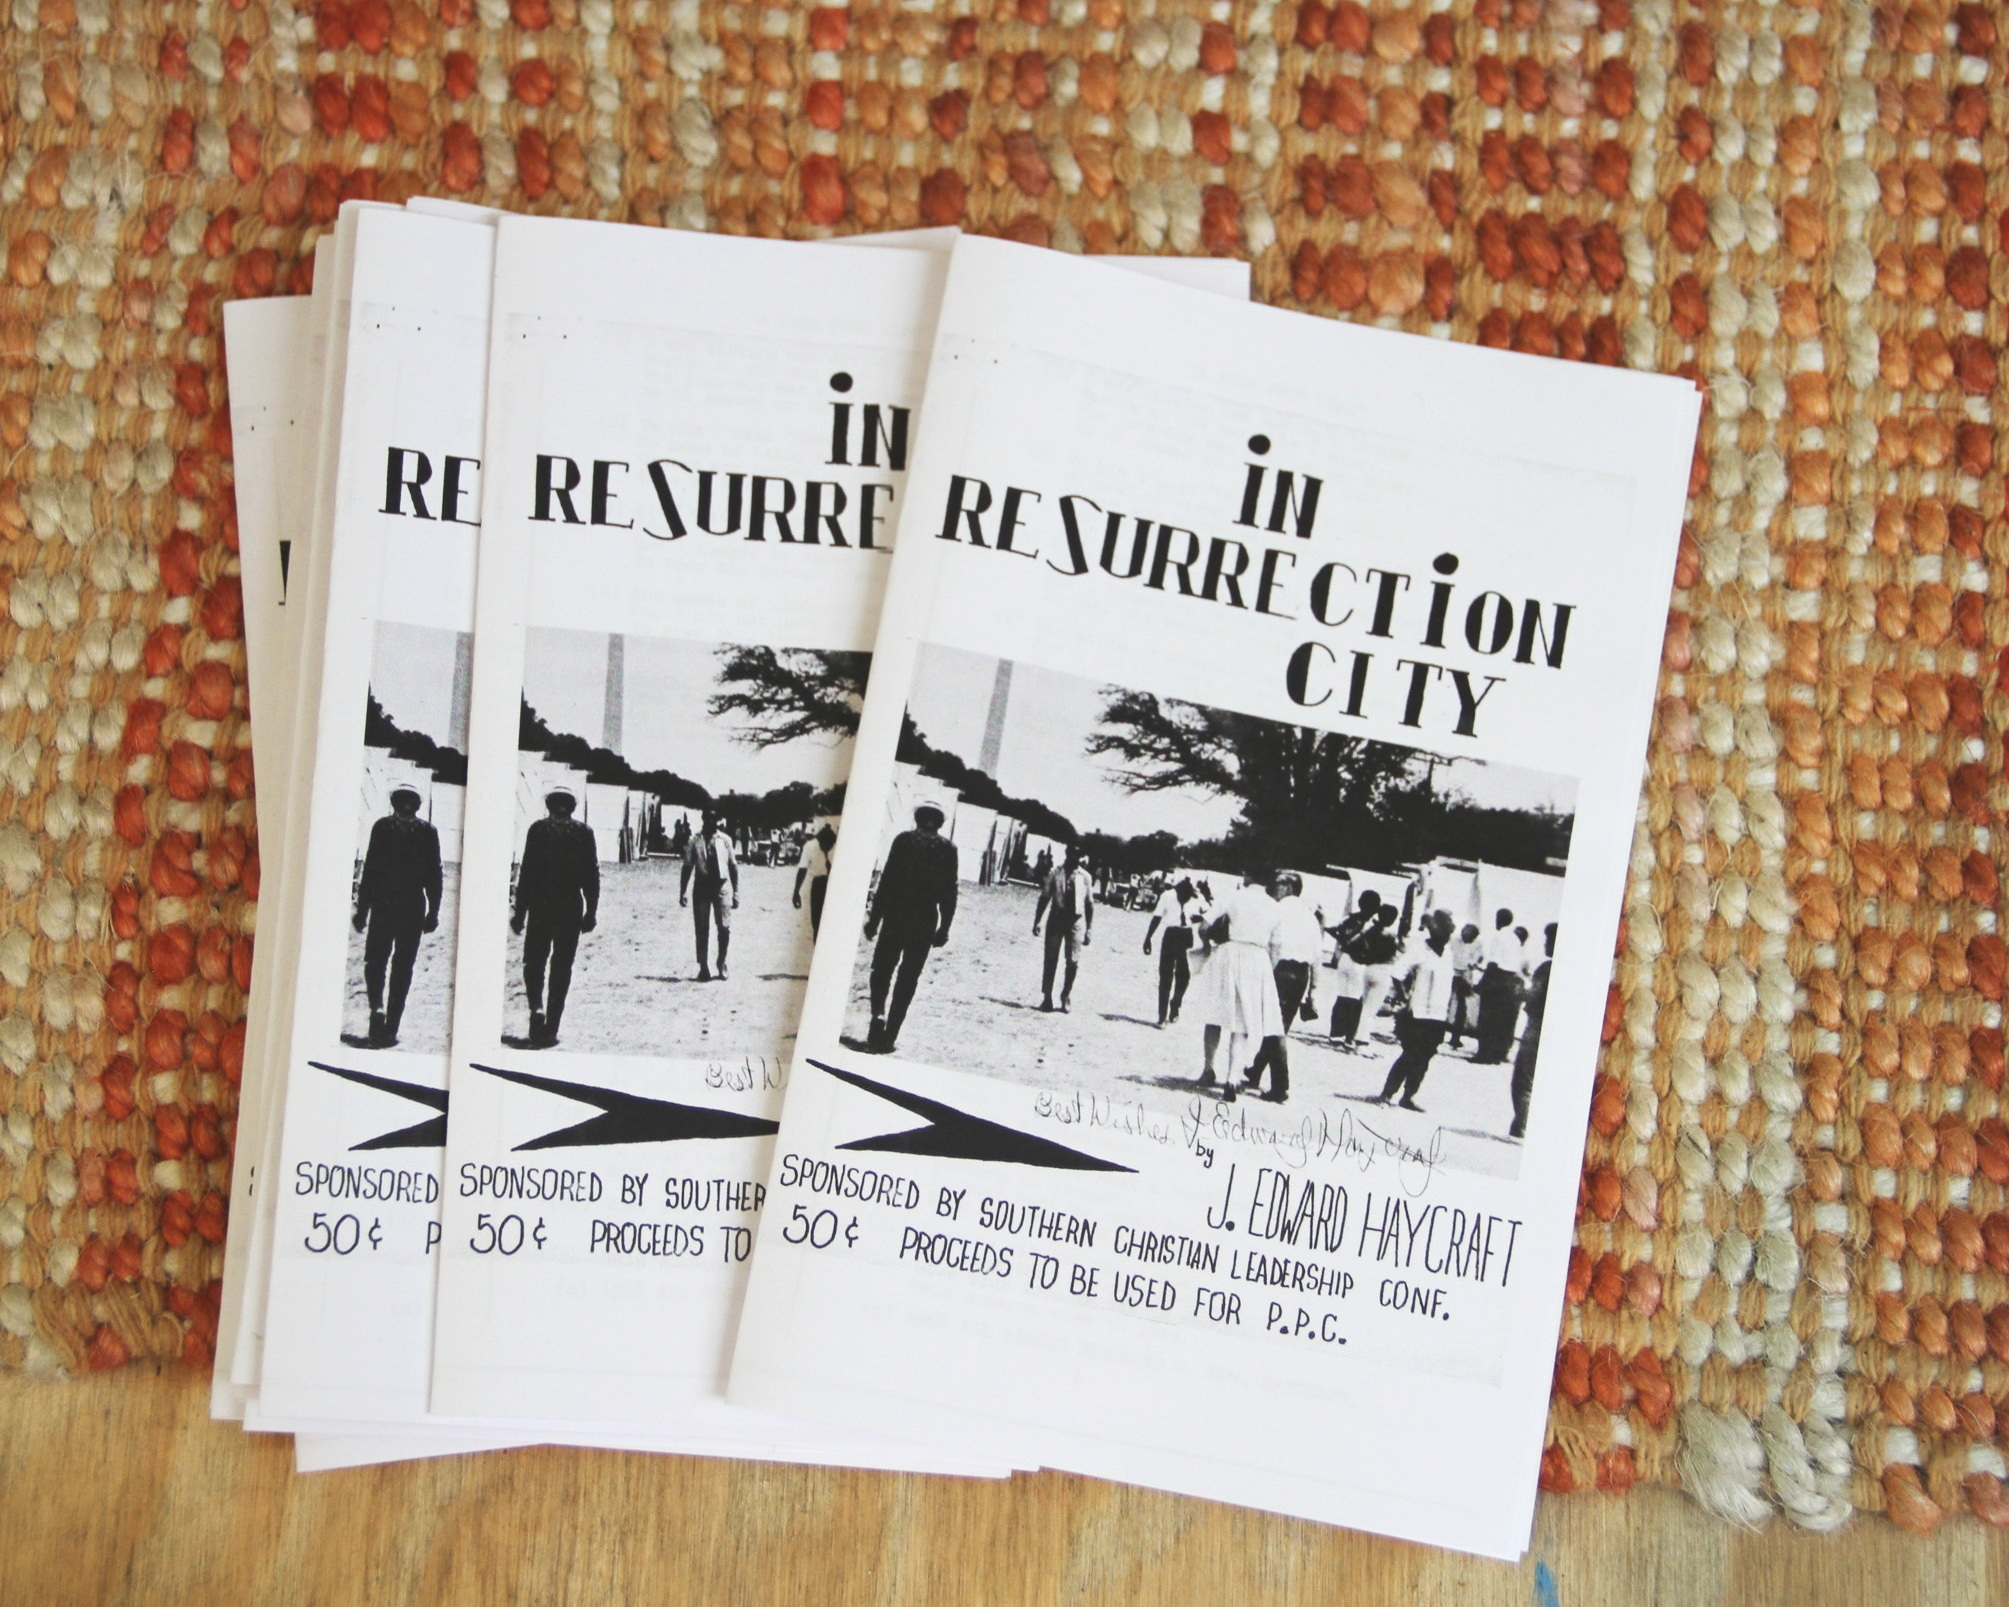 Reproductions of the Resurrection City Songbook